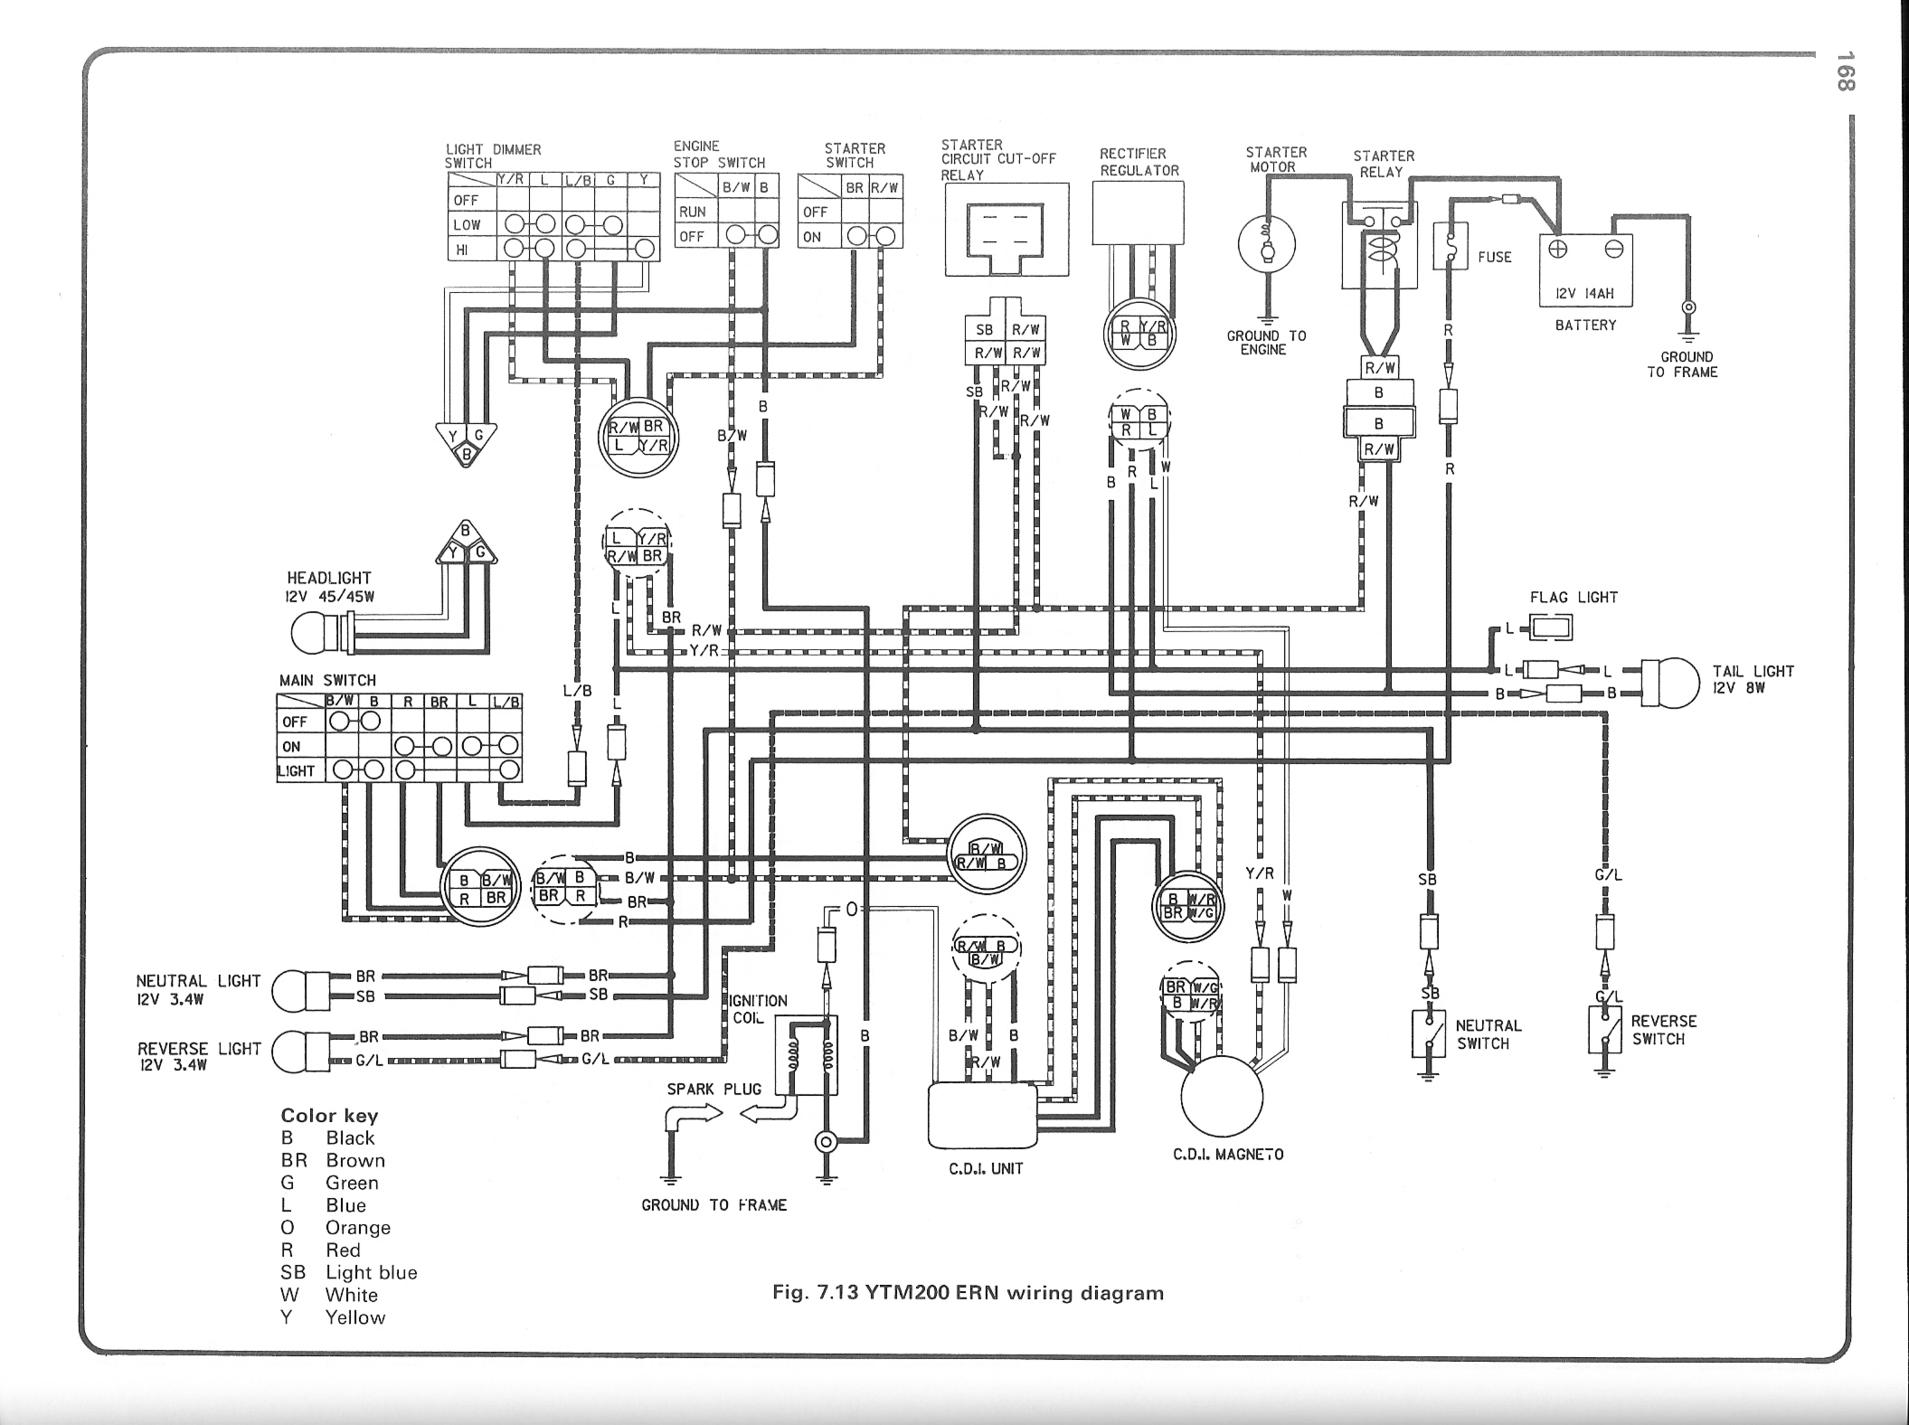 Kawasaki Bayou 400 Cdi Wiring - Cool Wiring Diagrams on